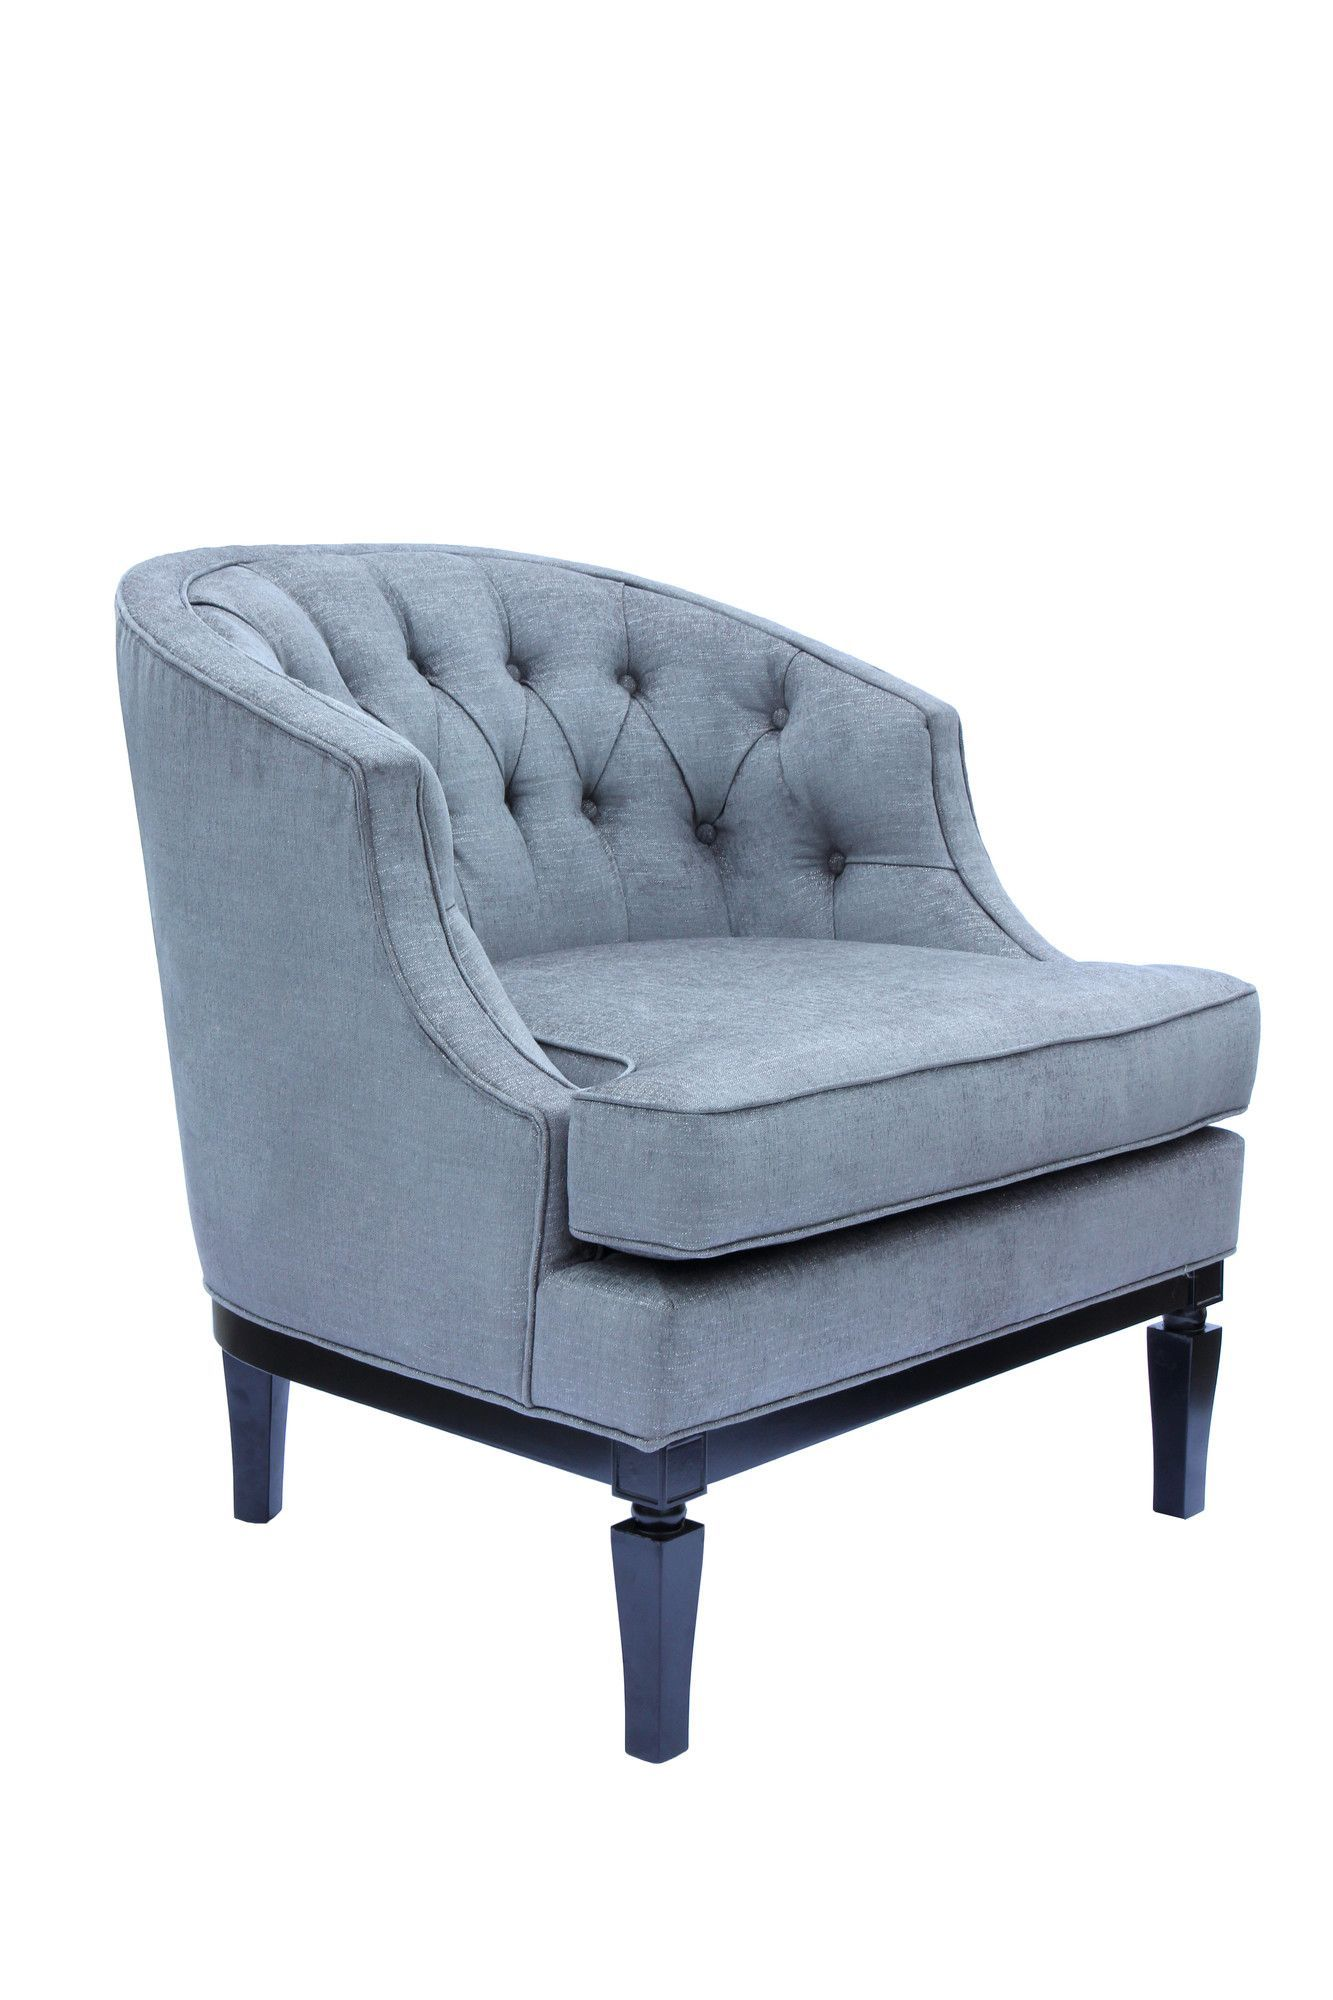 HD Couture Ashley Club Chair | Wayfair